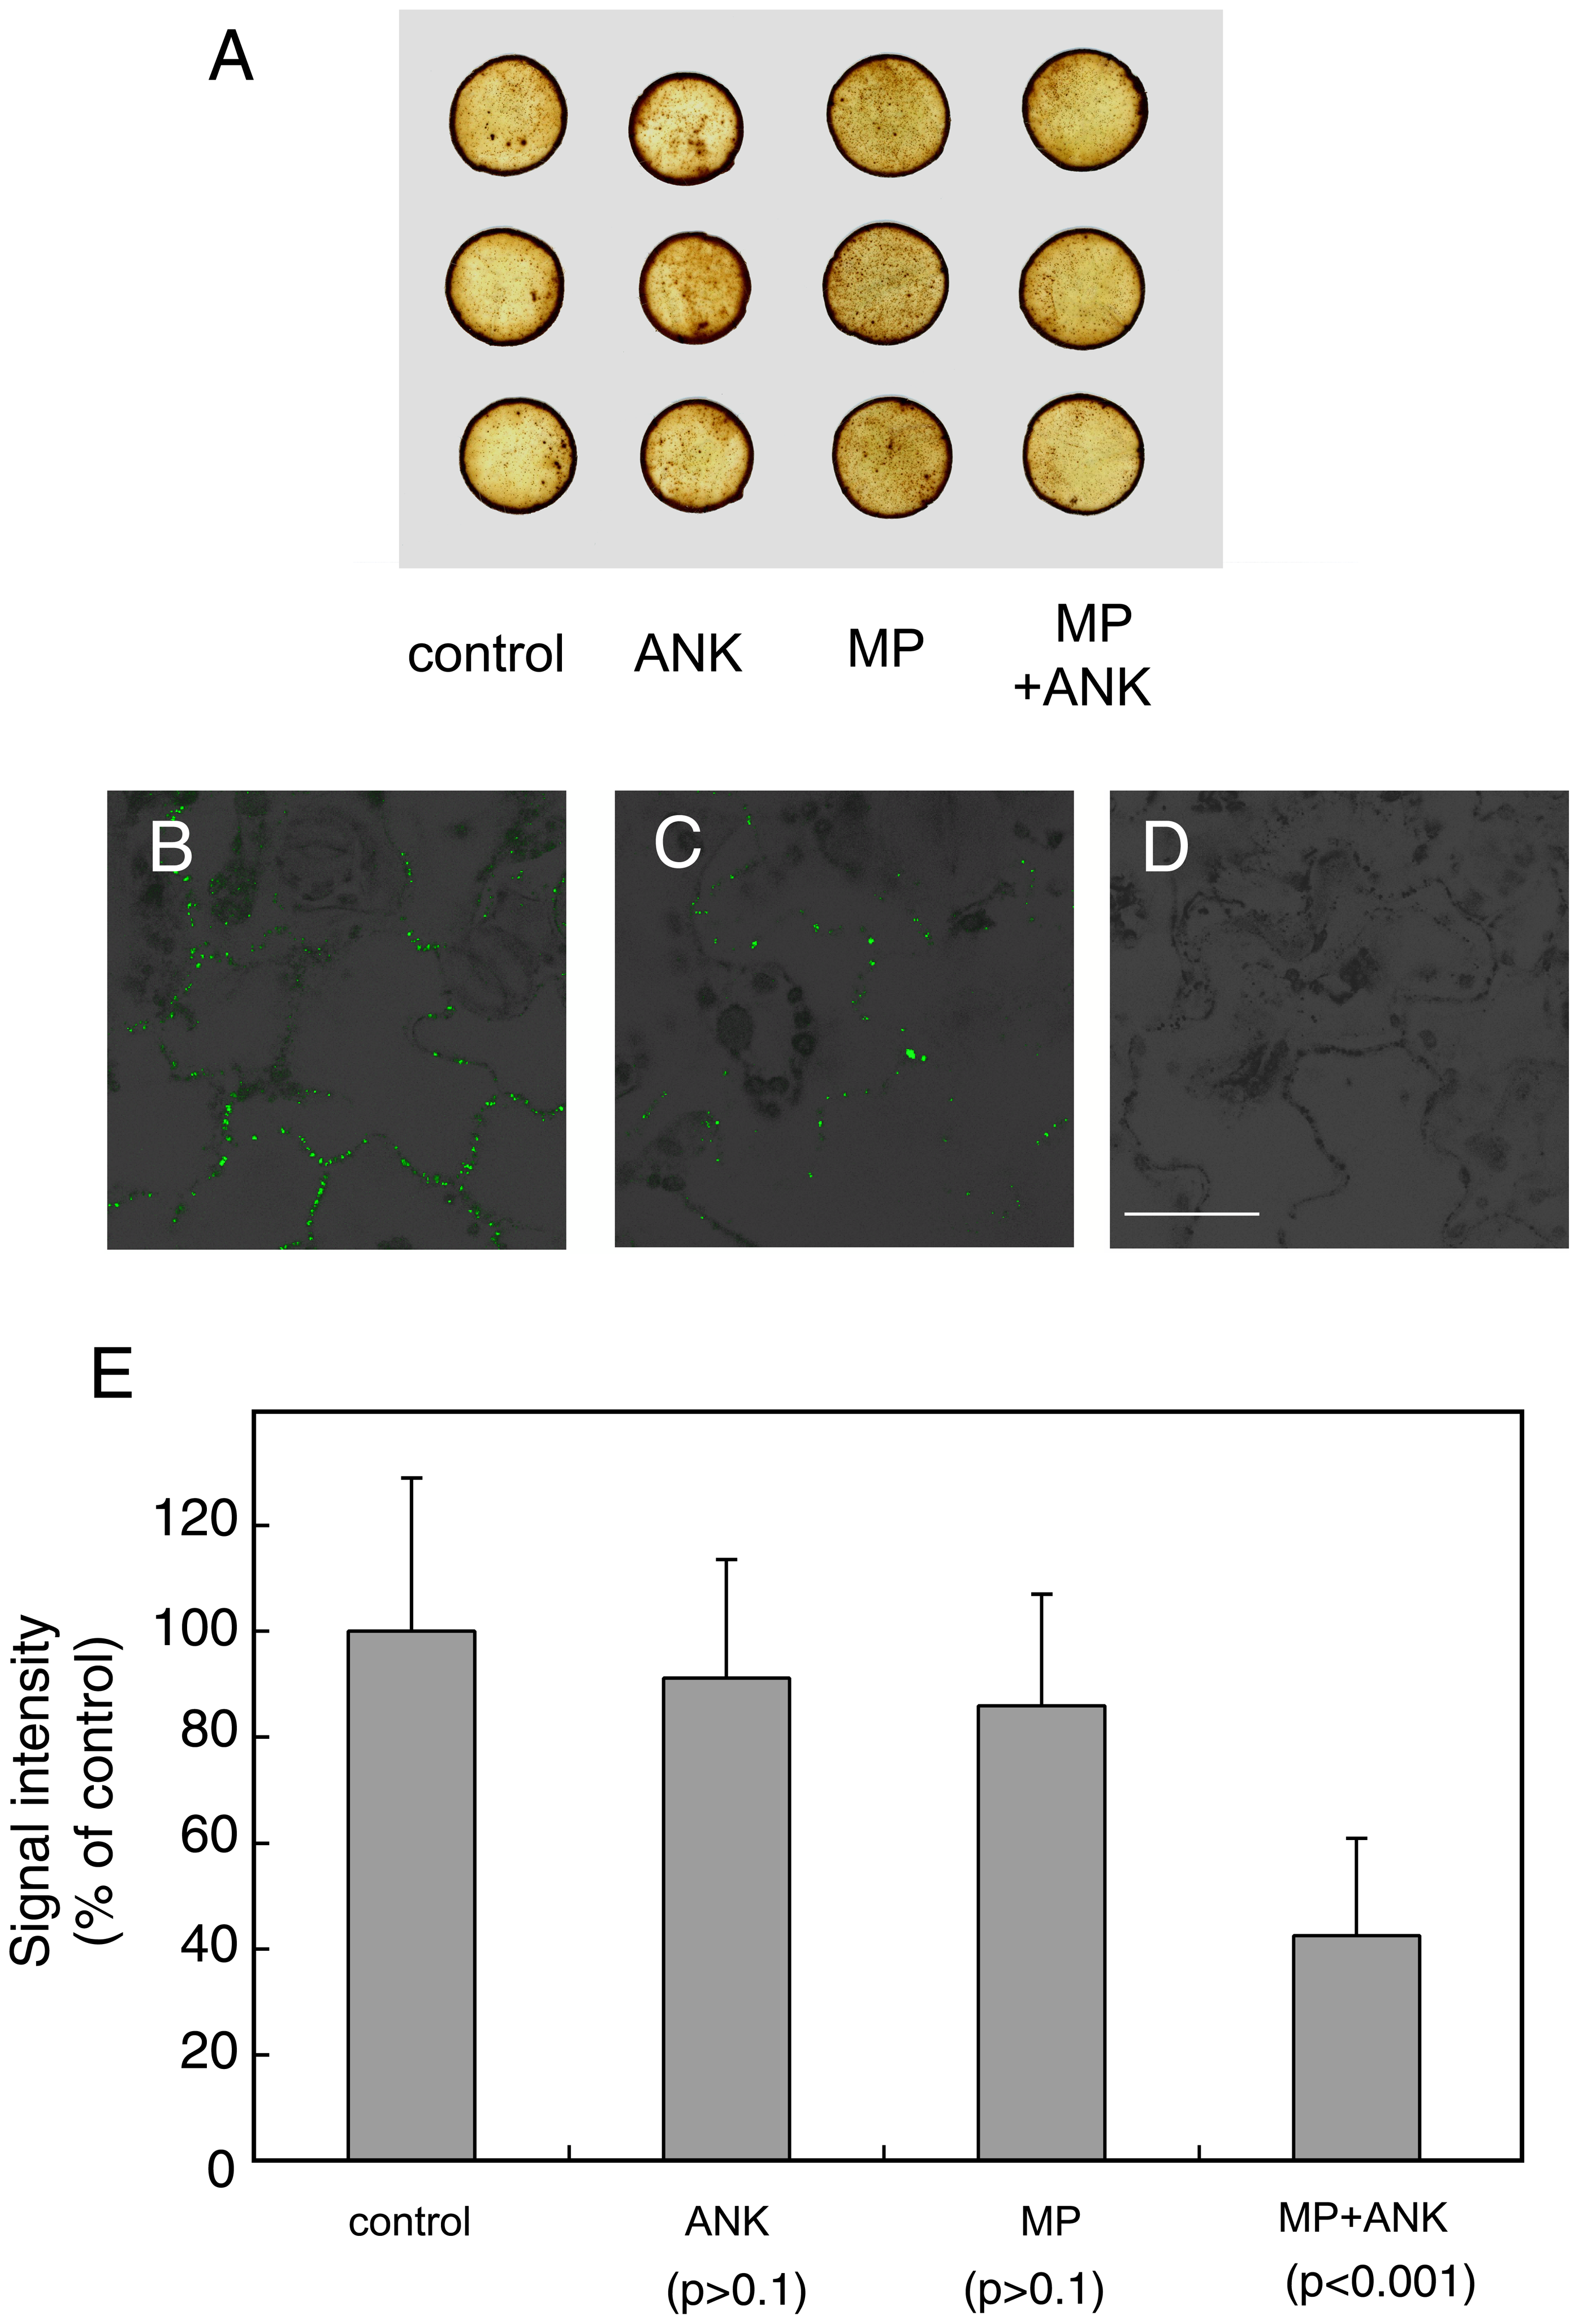 Effects of coexpression of ANK and MP on the content of ROS and callose in plant tissues.